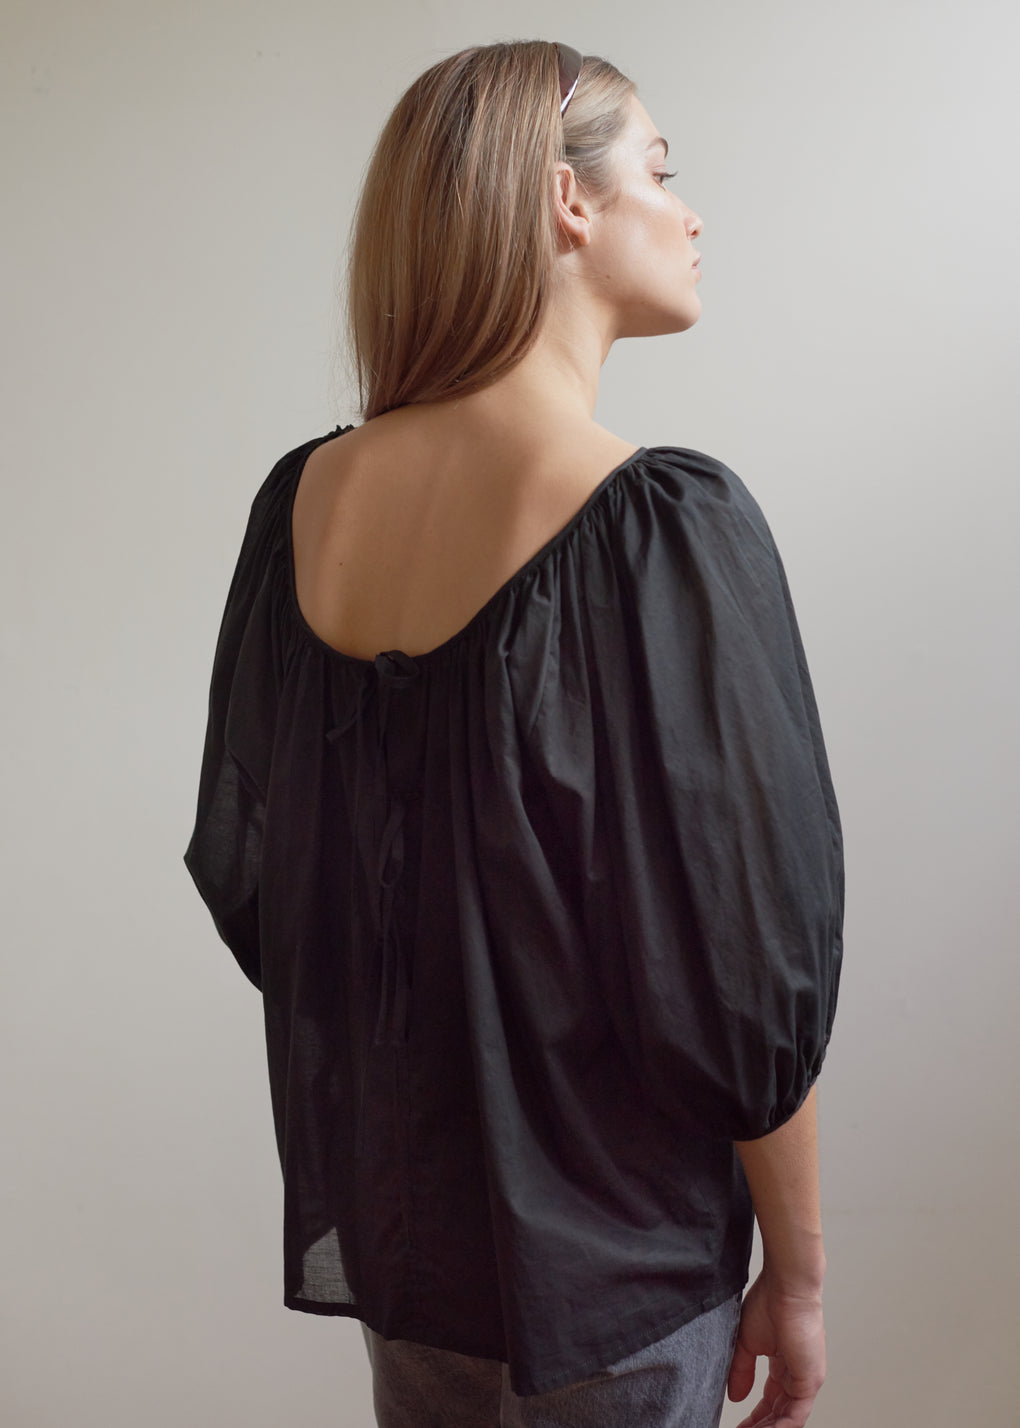 Ballet Blouse | Cotton Voile | Black